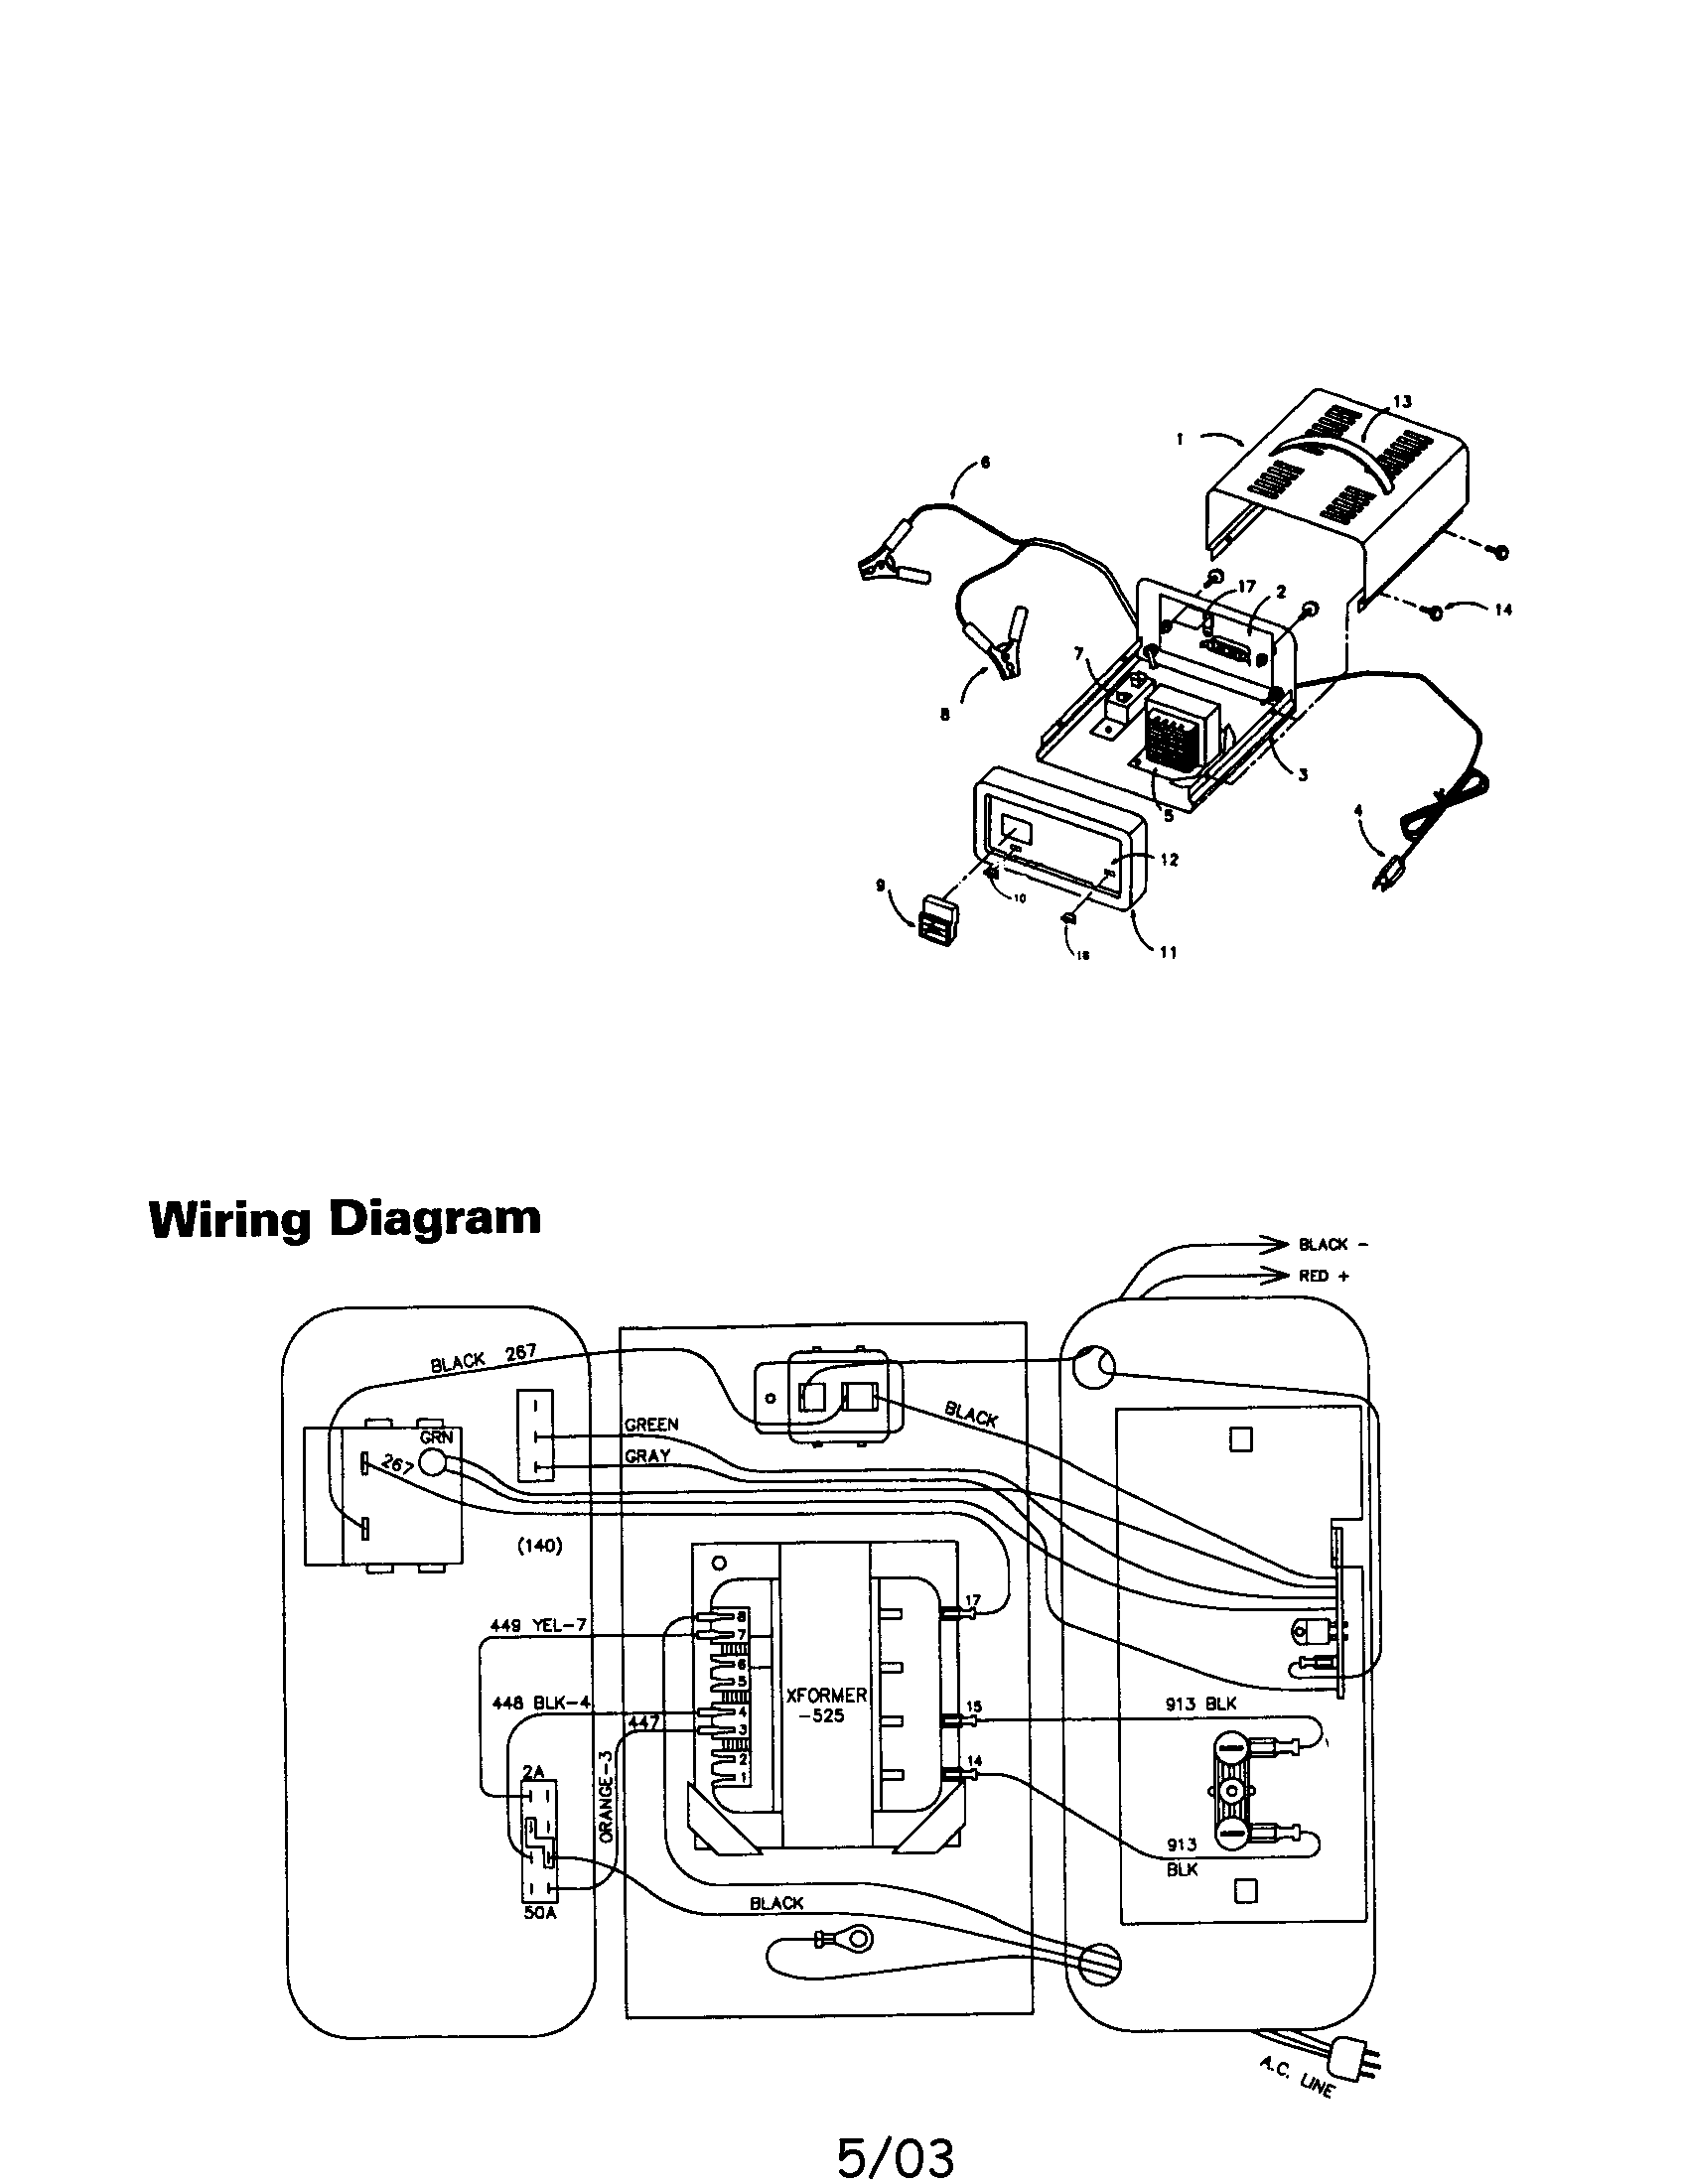 wiring diagram everstart 200 battery charger